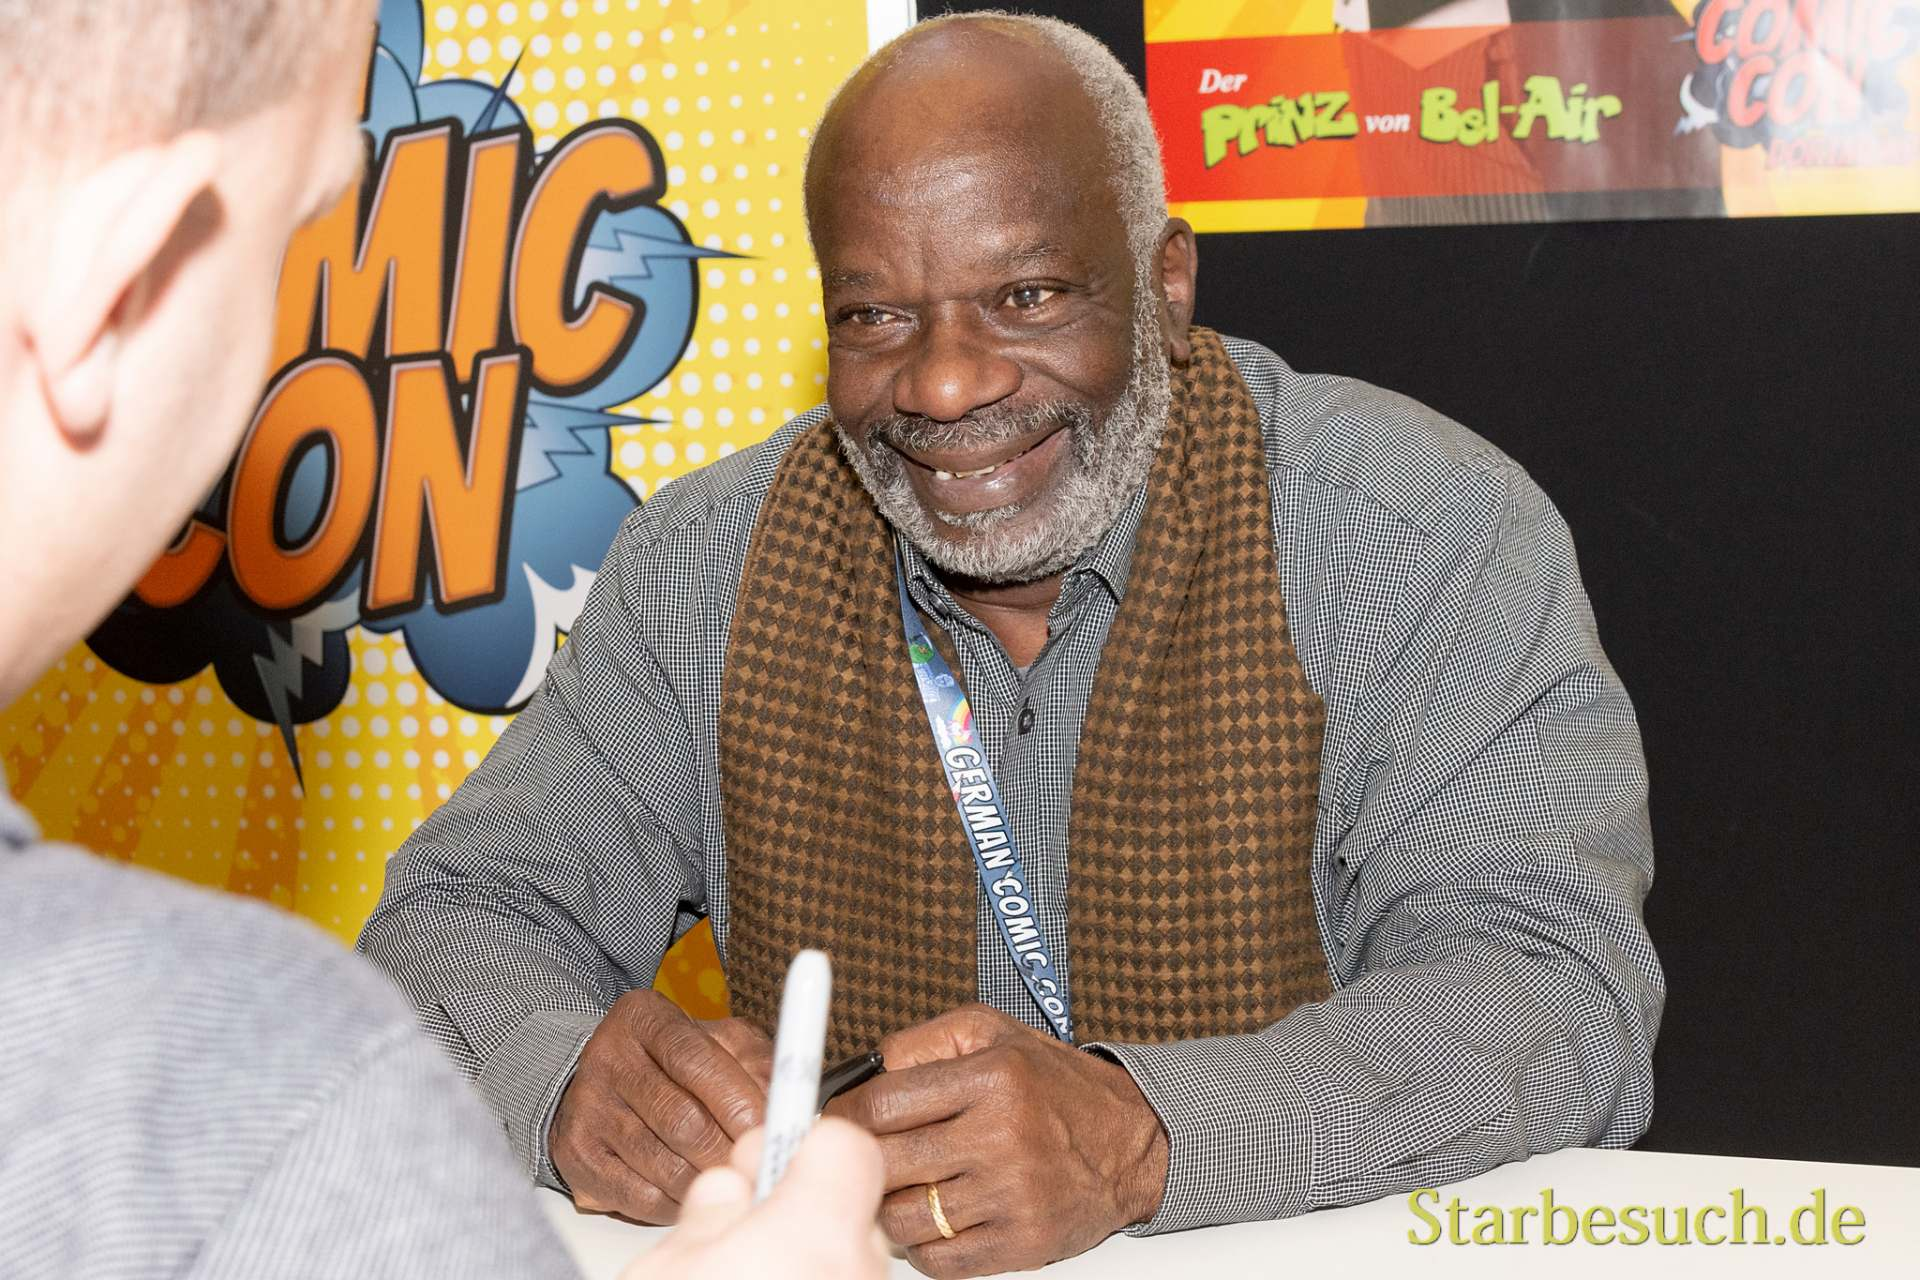 DORTMUND, GERMANY - December 1st 2018: Joseph Marcell (*1948, British actor) is happy to meet fans at German Comic Con Dortmund, a two day fan convention